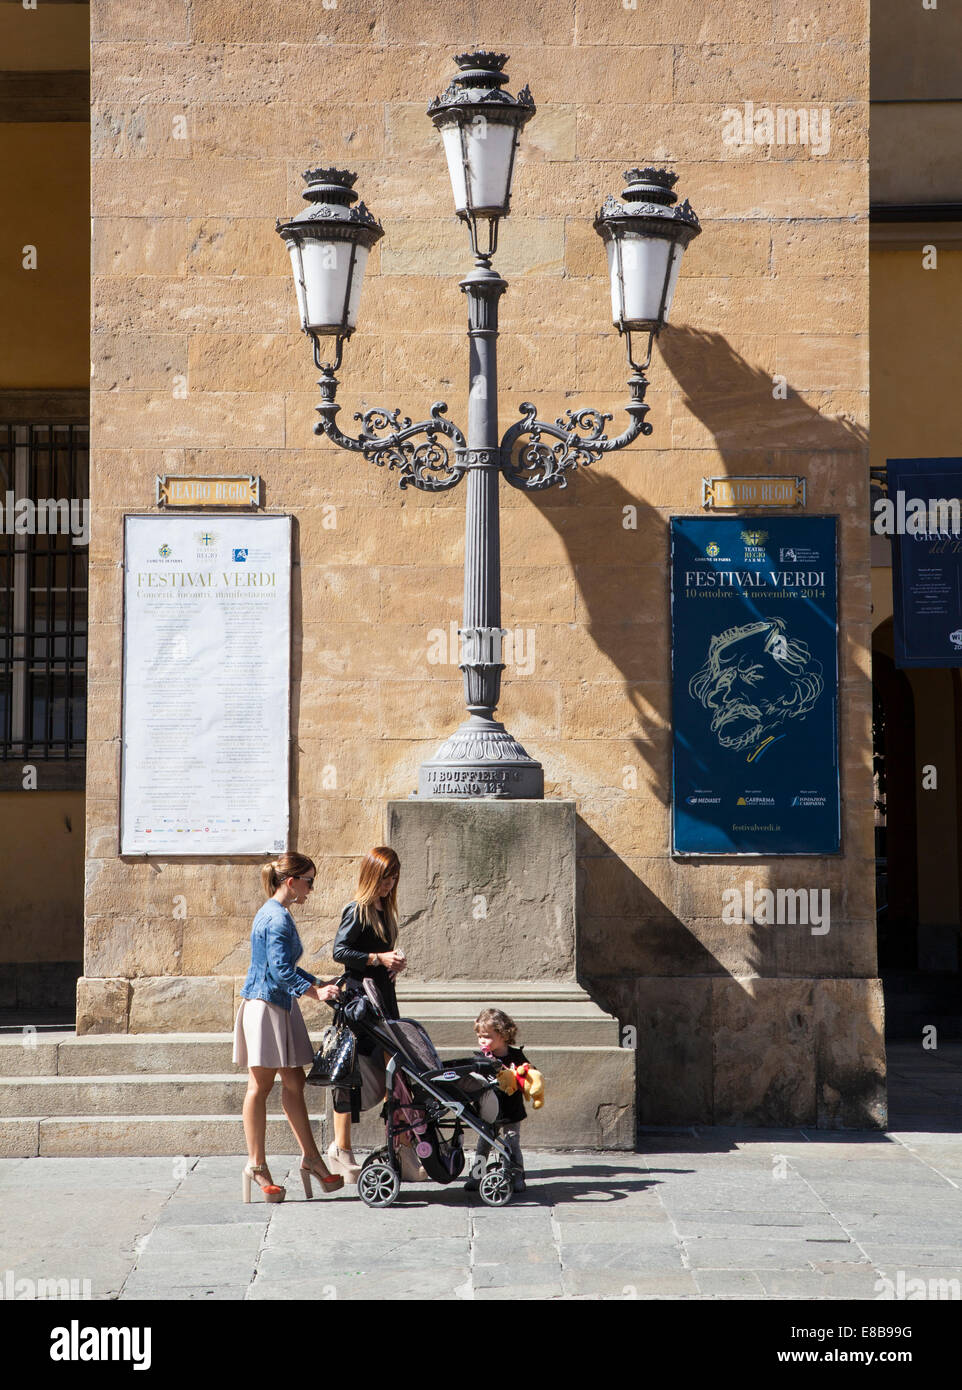 Two women with child and pushchair, Parma, Emilia-Romagna, Italy - Stock Image